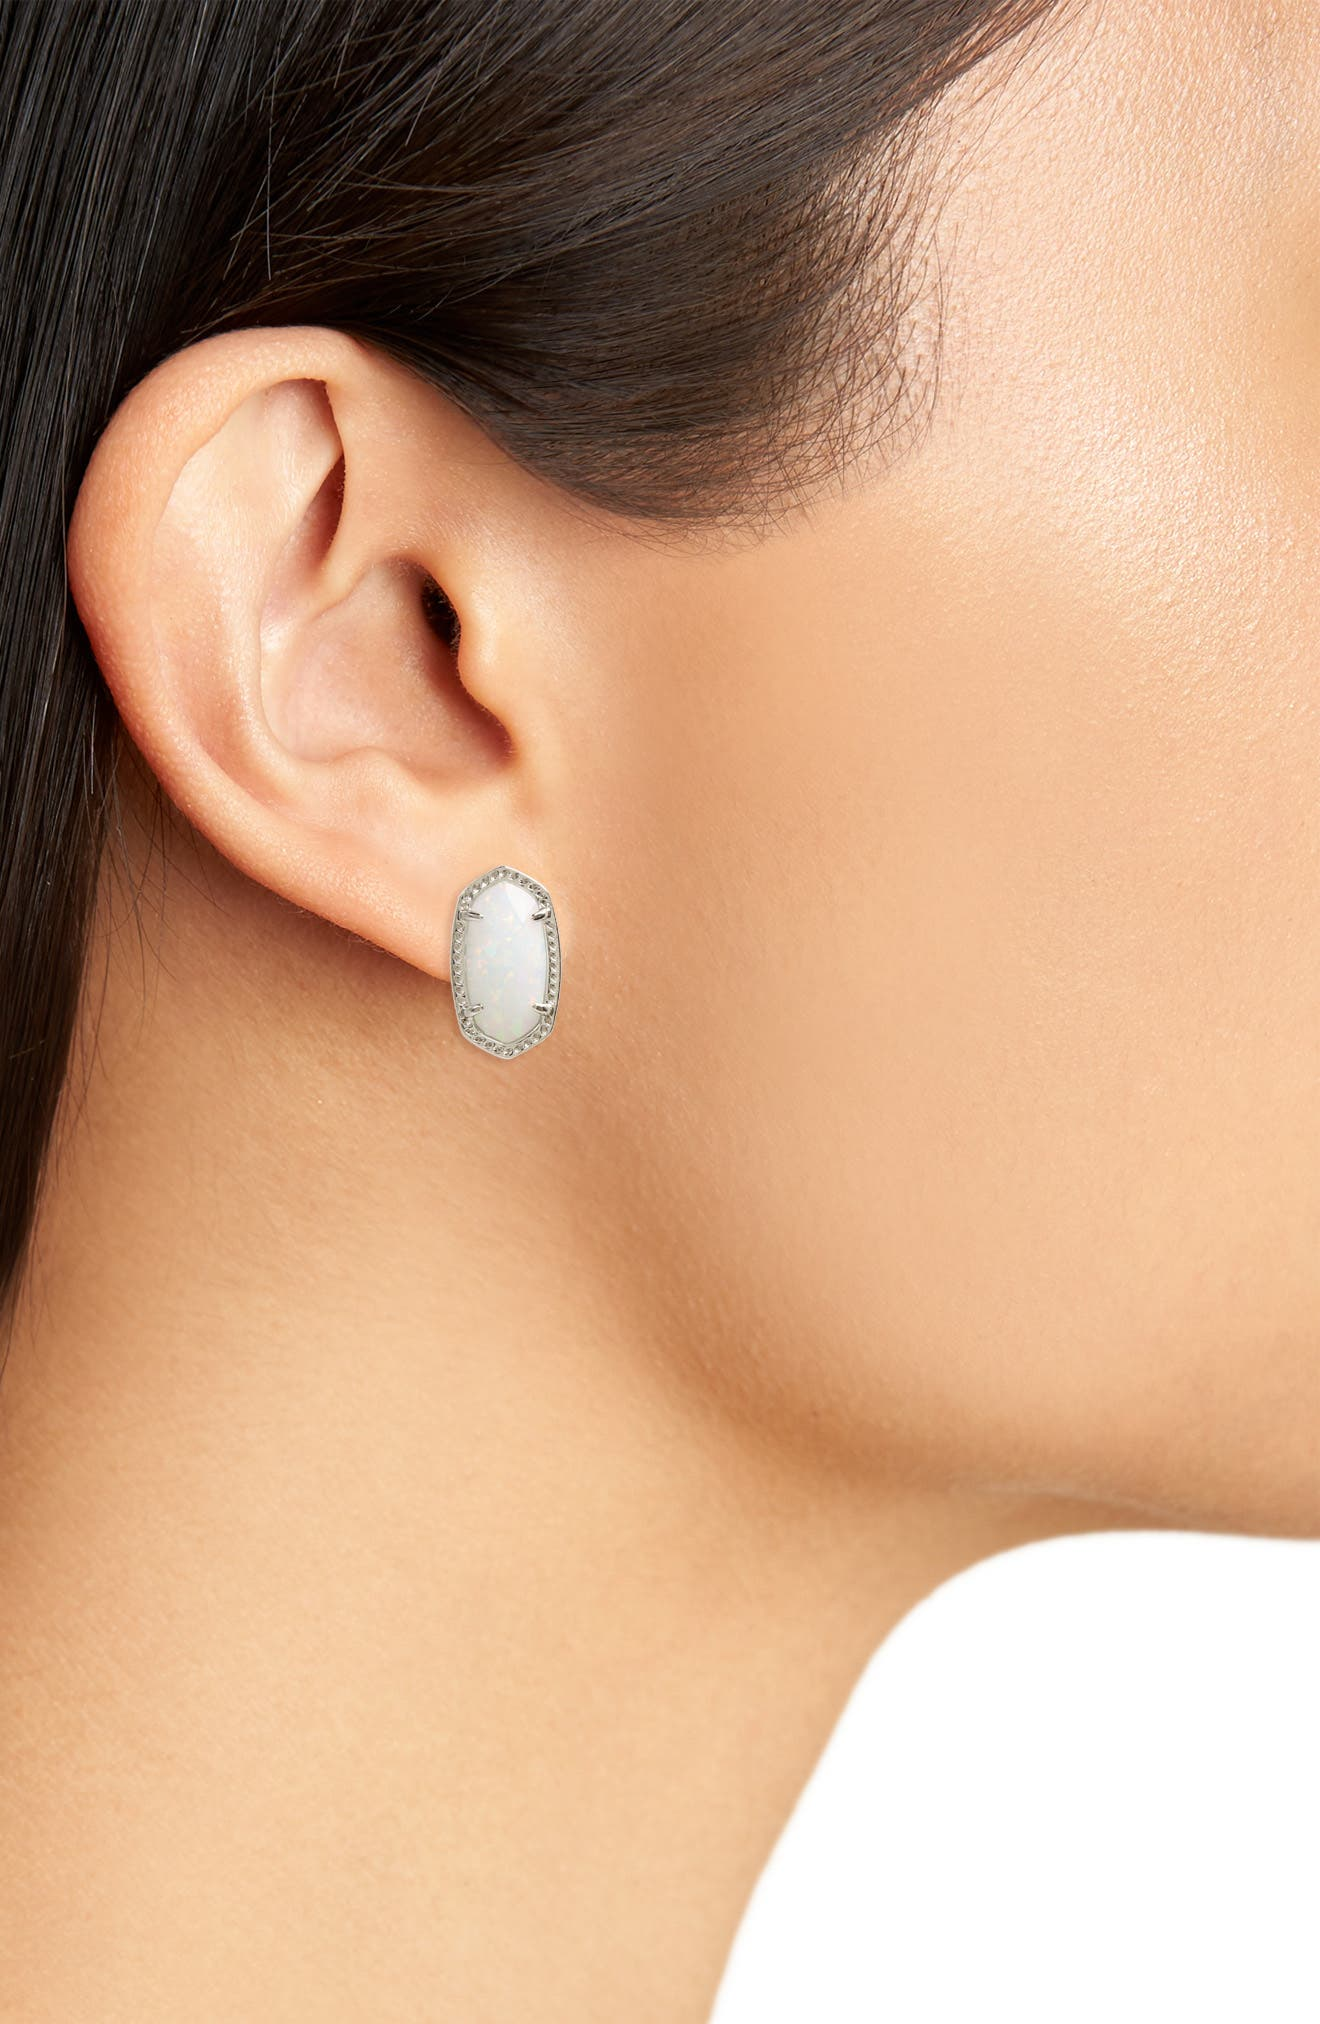 Ellie Oval Stud Earrings,                             Alternate thumbnail 2, color,                             049